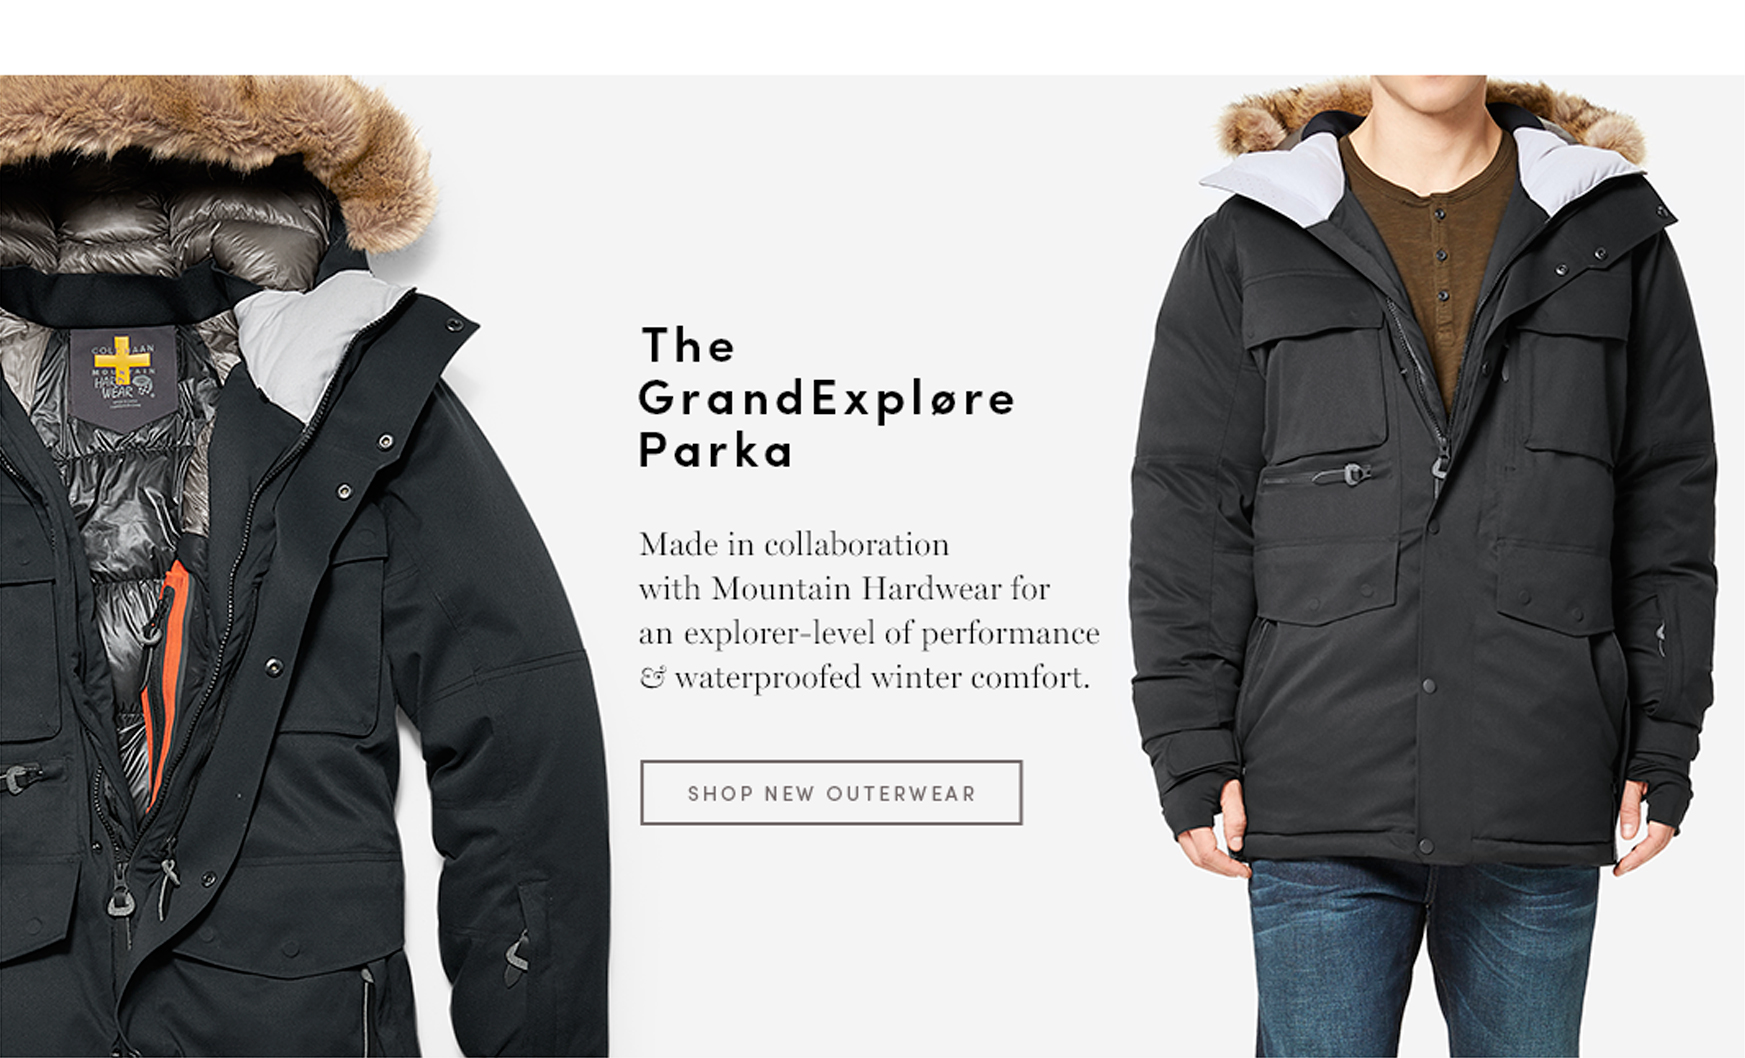 The GrandExplore Parka: Made in collaboration with the Mountain HArdwear for an explorer-level of performance and waterproof winter comfort